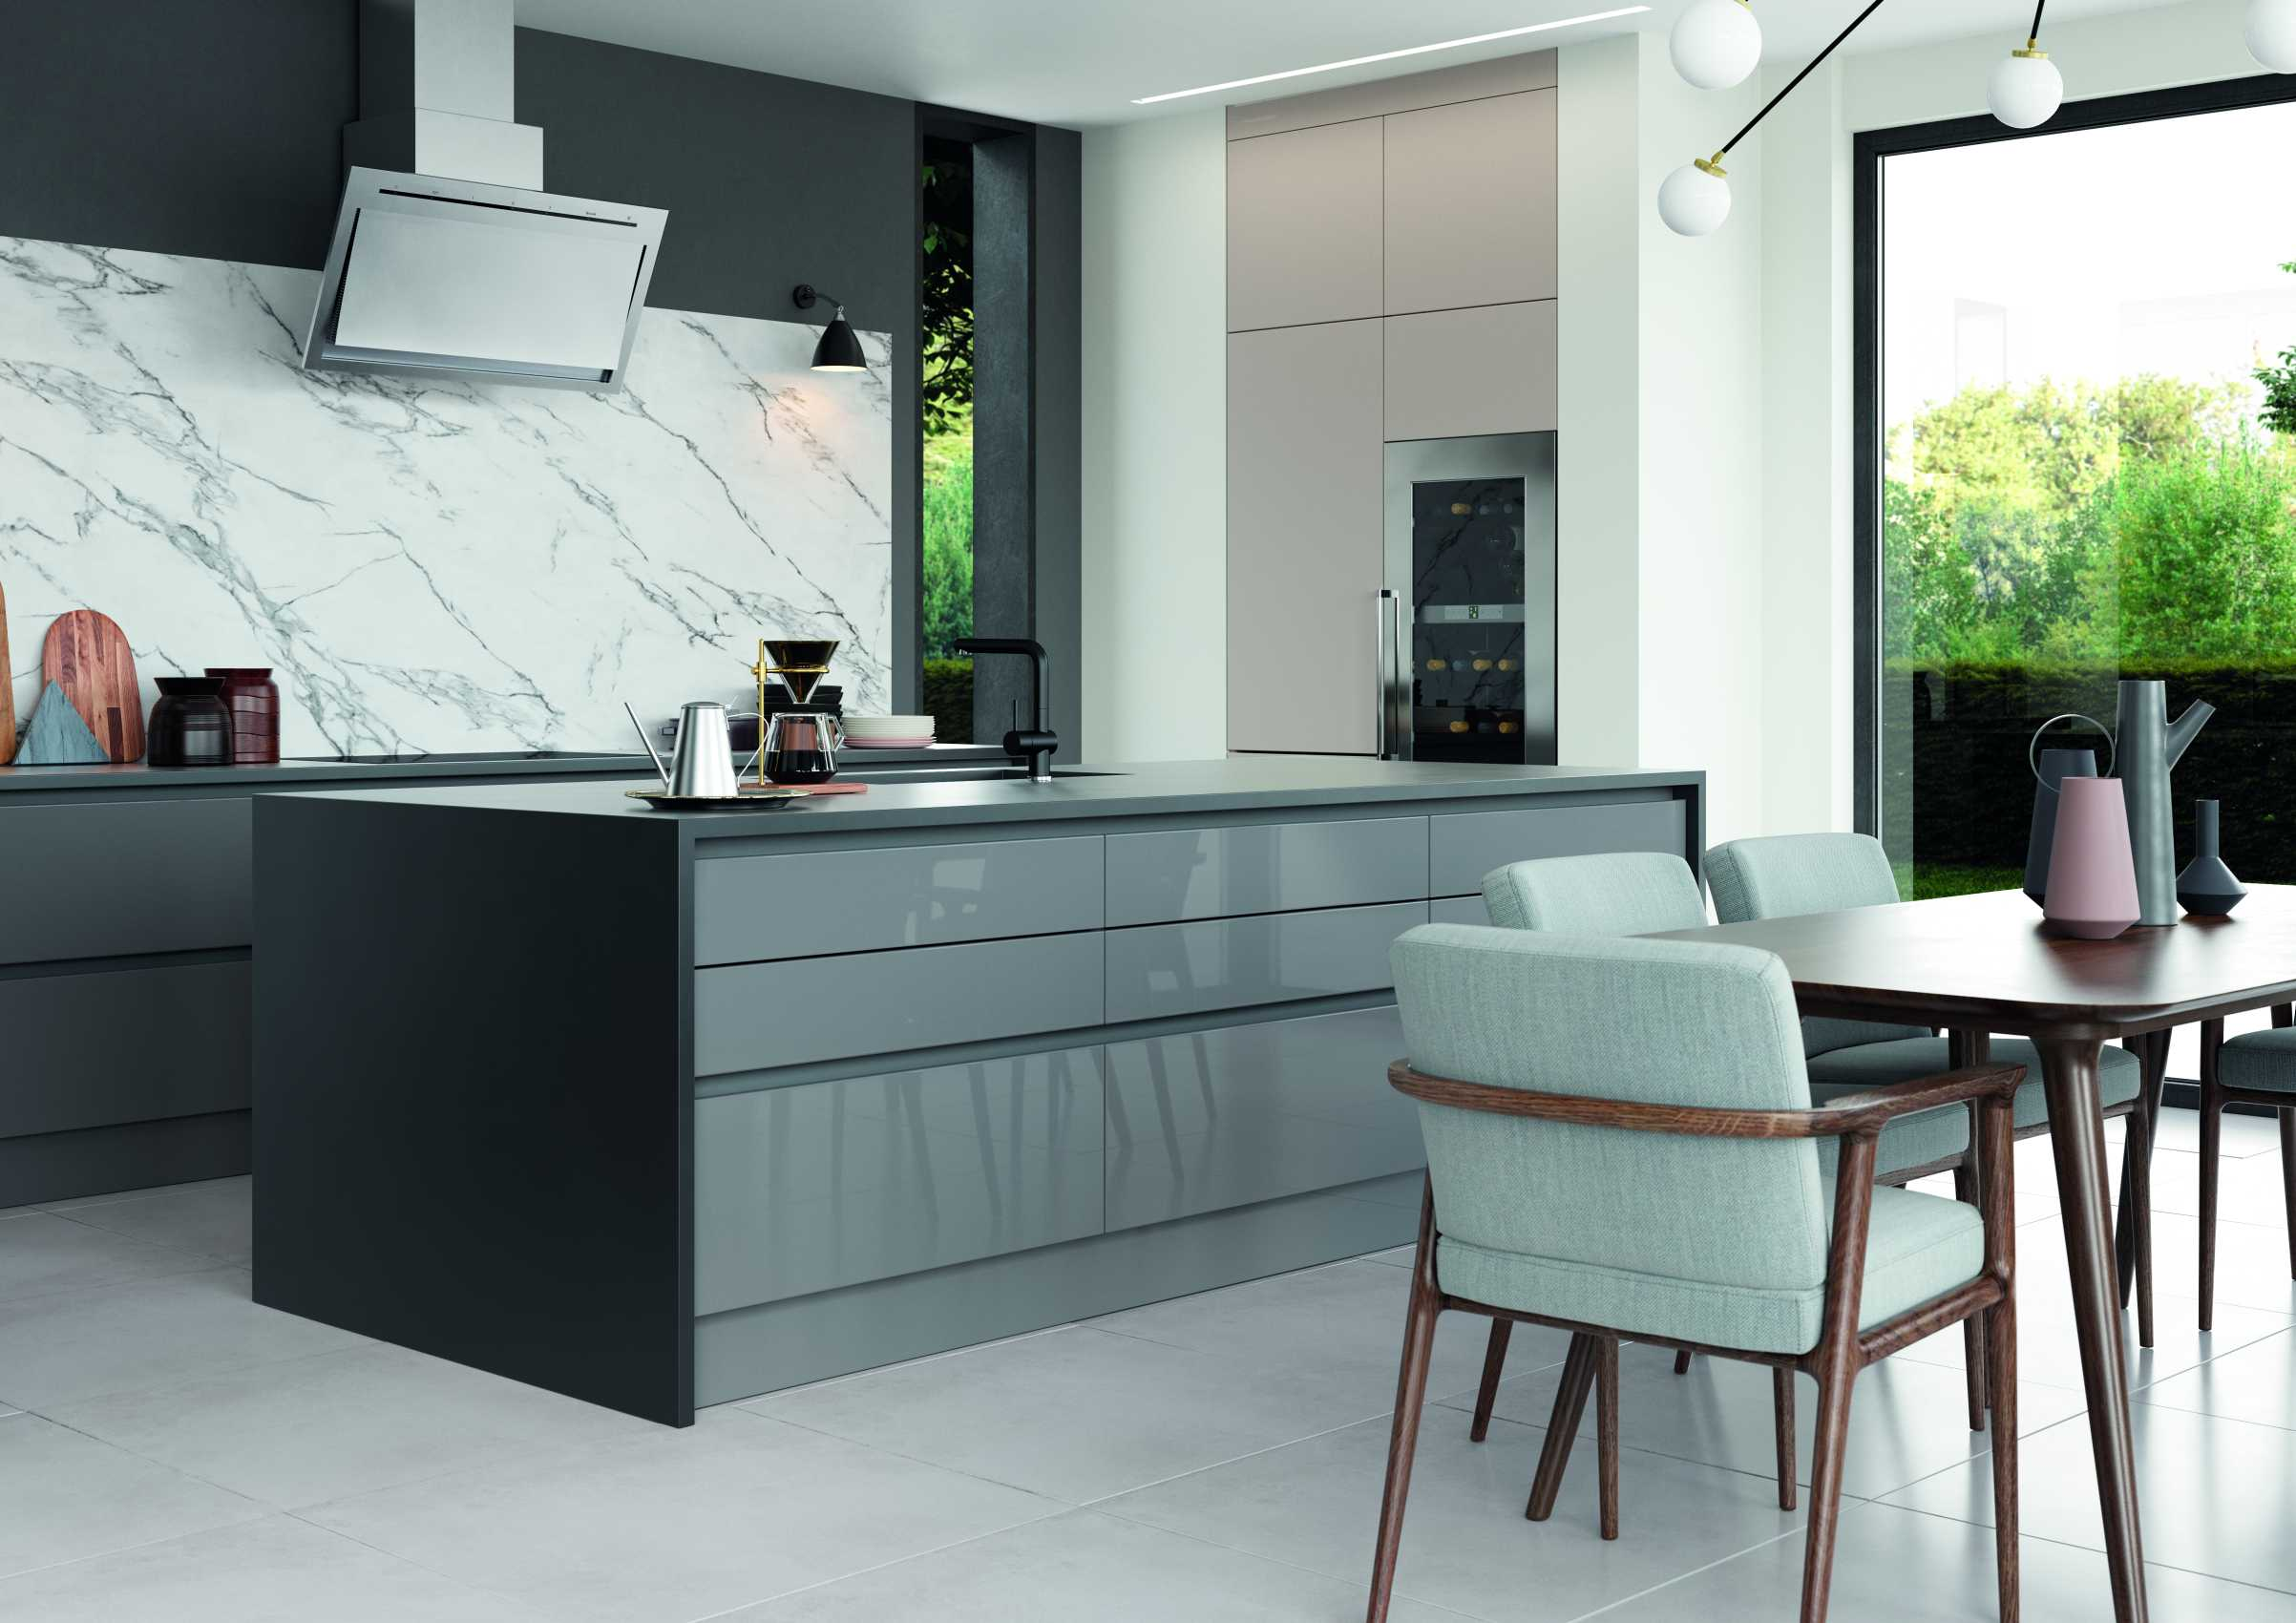 gloss dust grey and cashmere handleless modern kitchen island storage and worktop